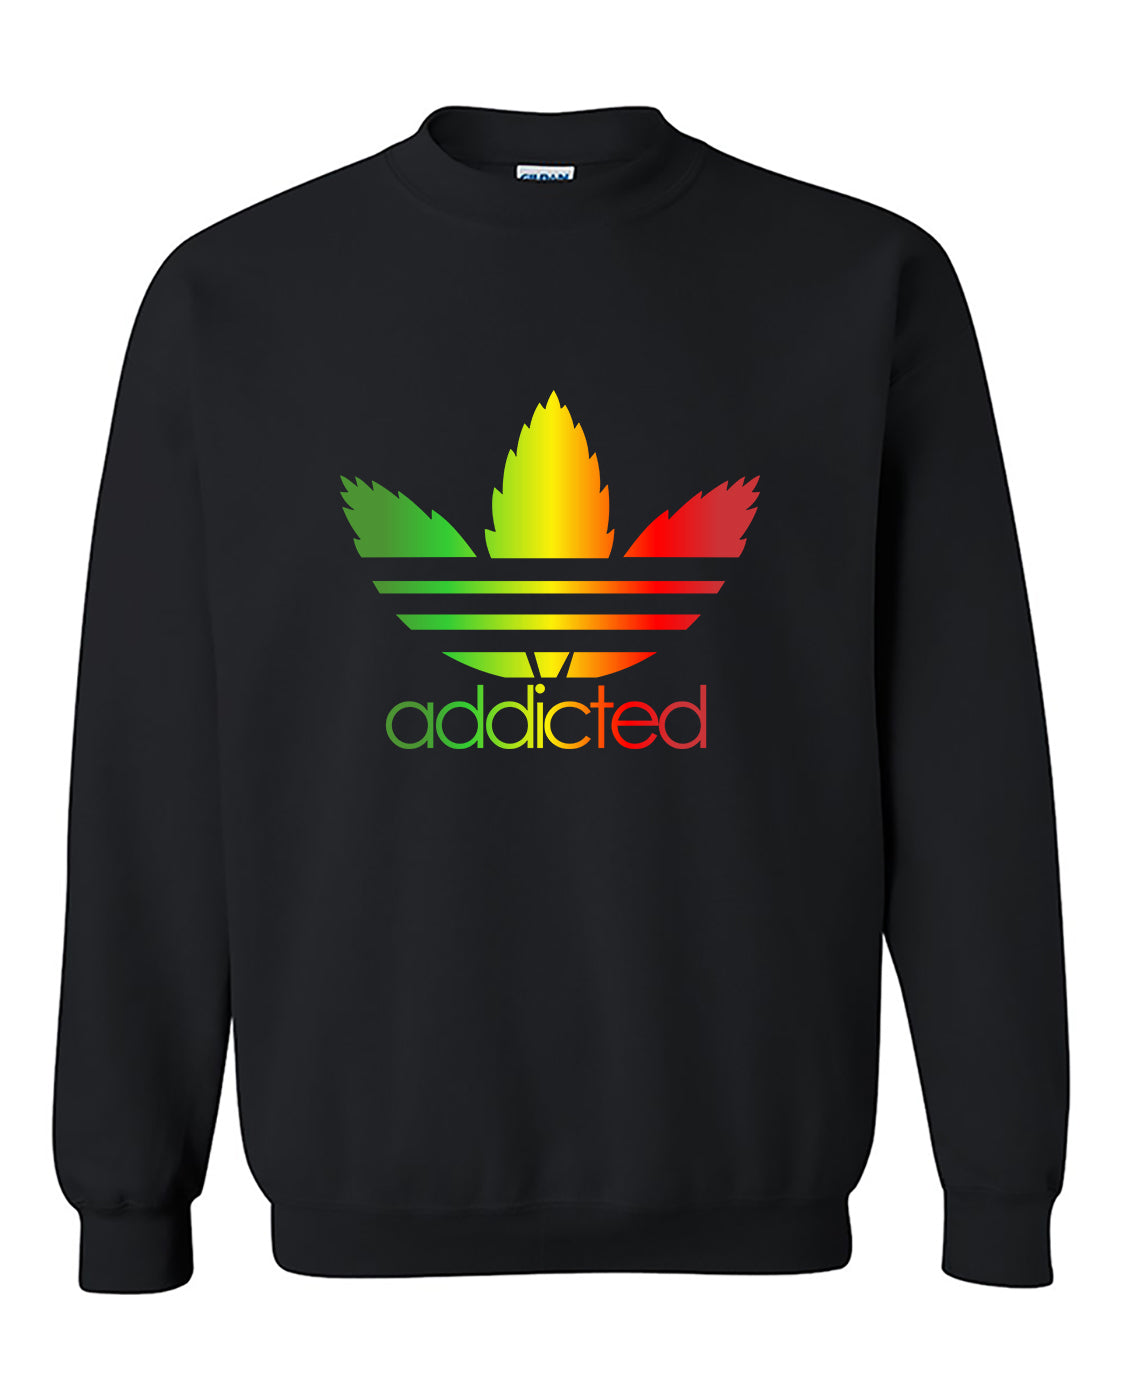 Addicted Rasta parody Marijuana Weed Smokers Crewneck Sweater